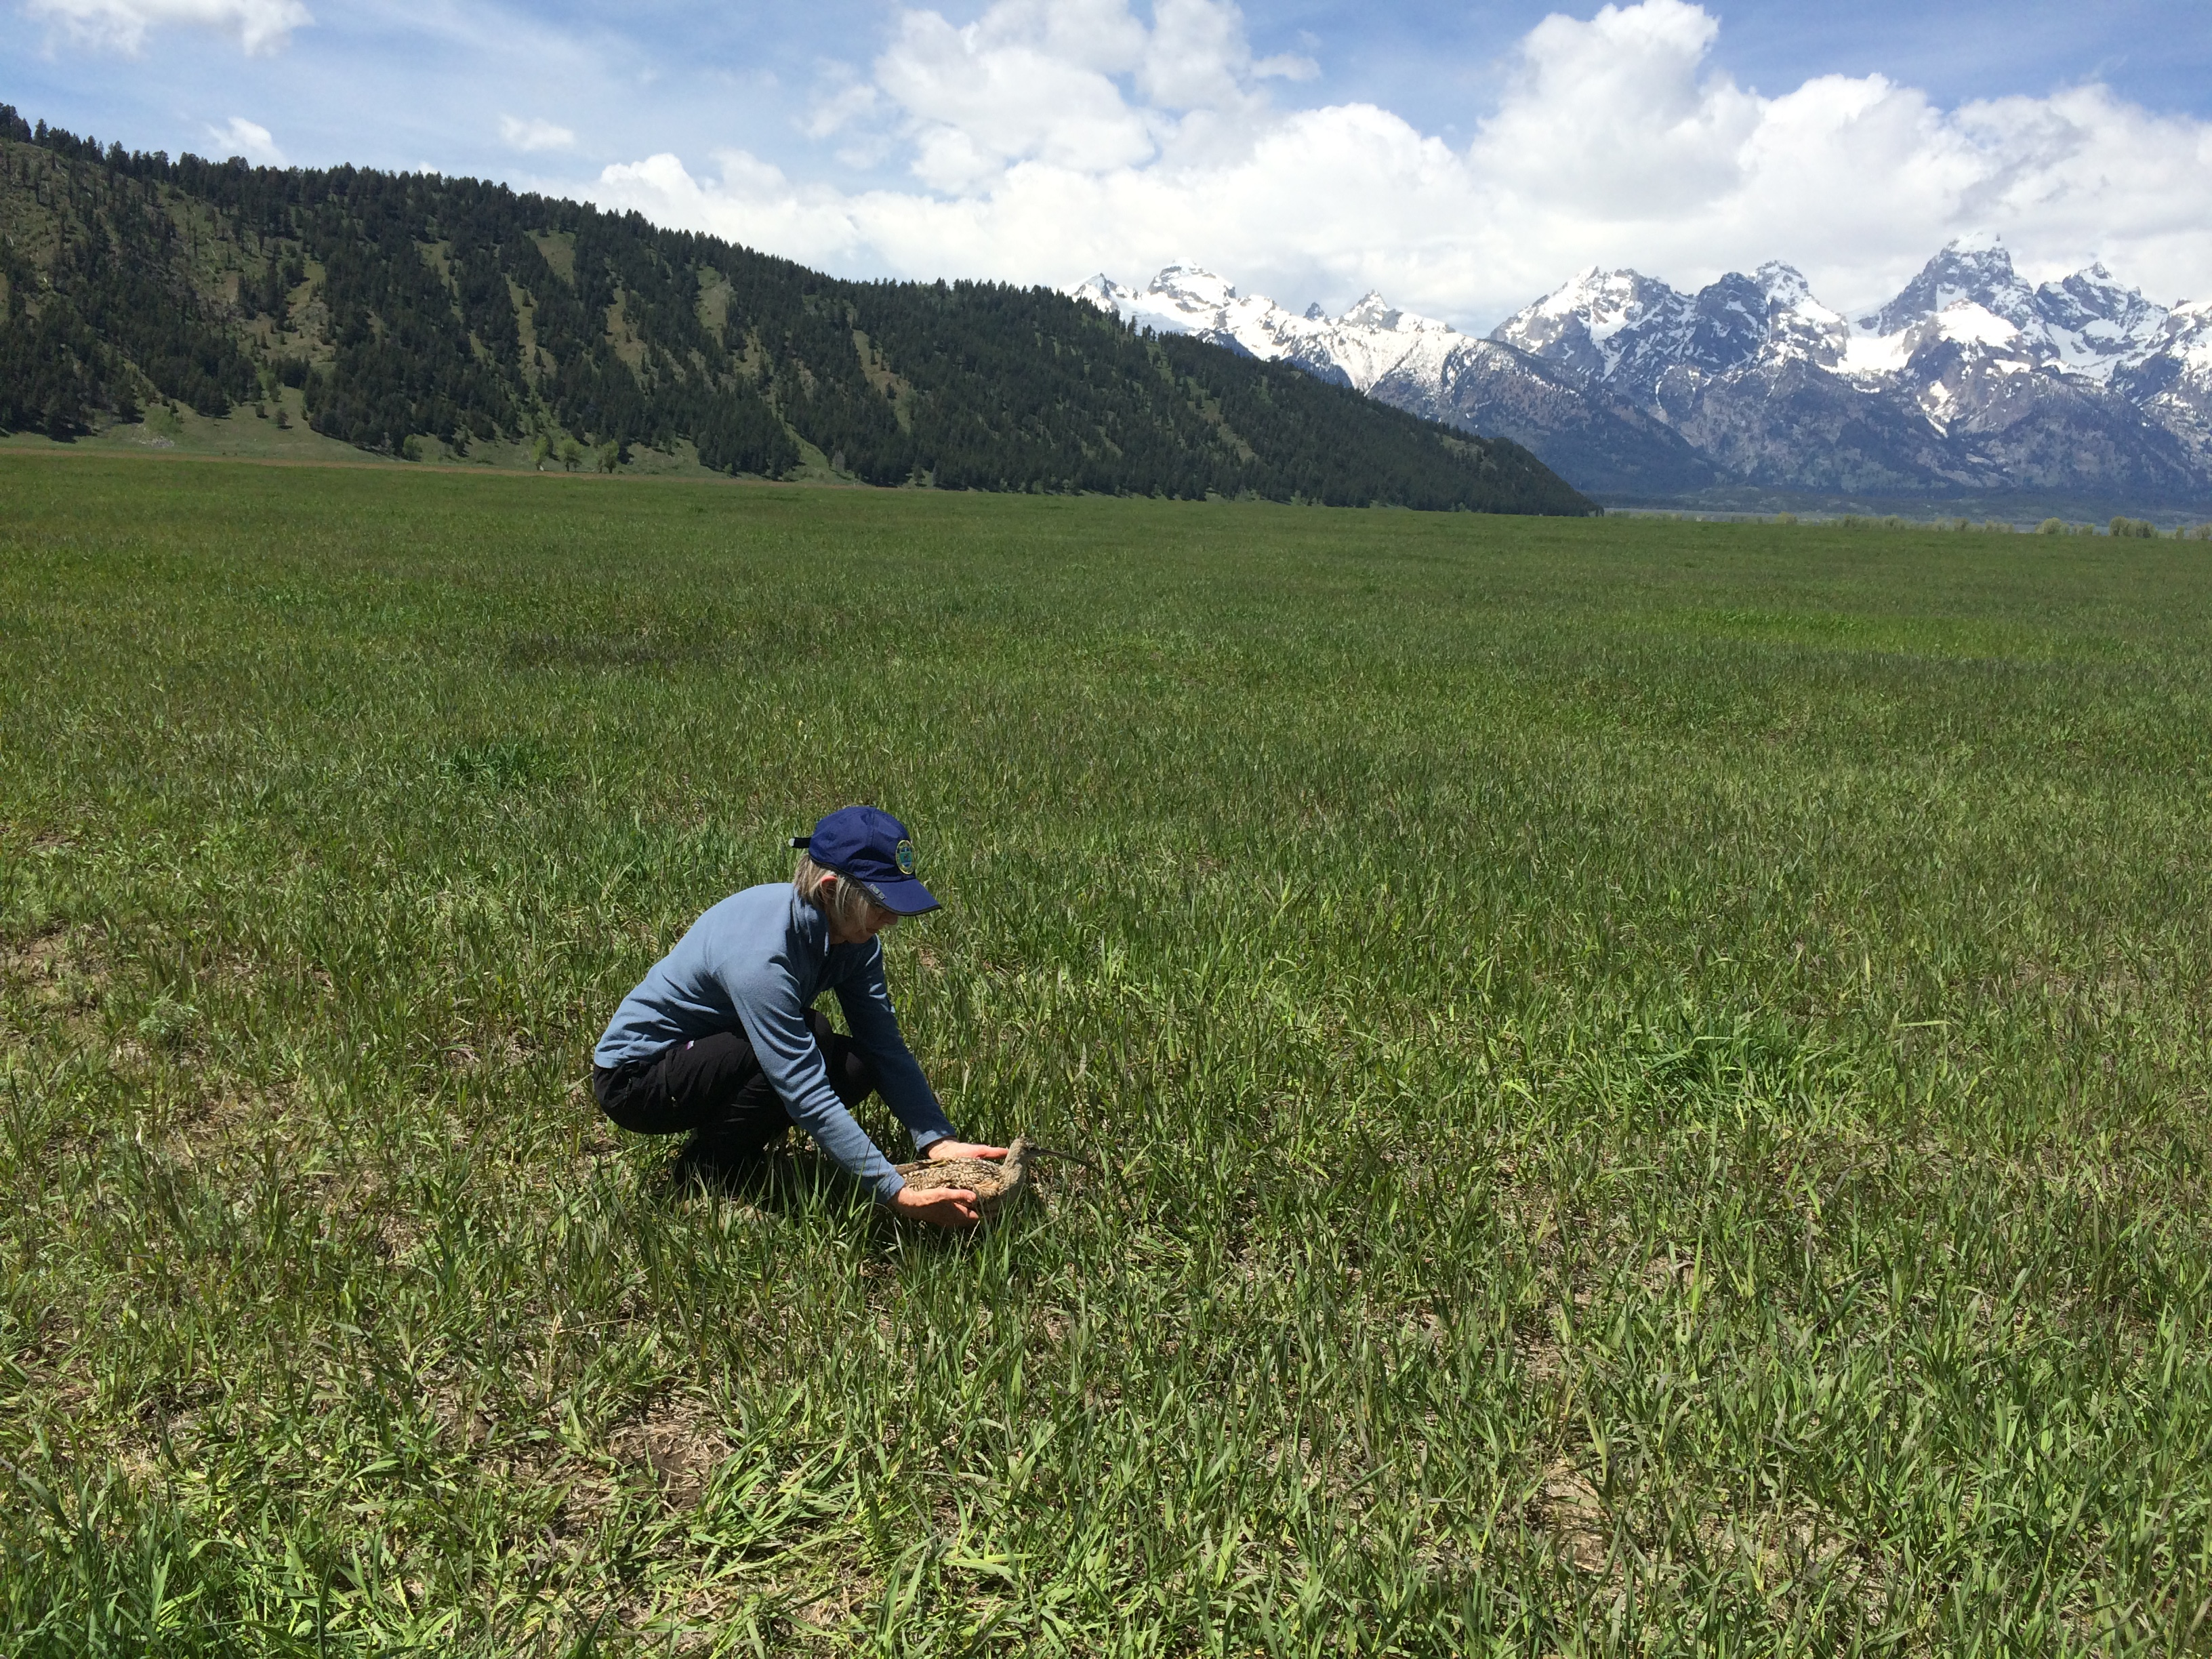 a woman holds a curlew and sets it on the ground with green meadows and snowy mountains surrounding